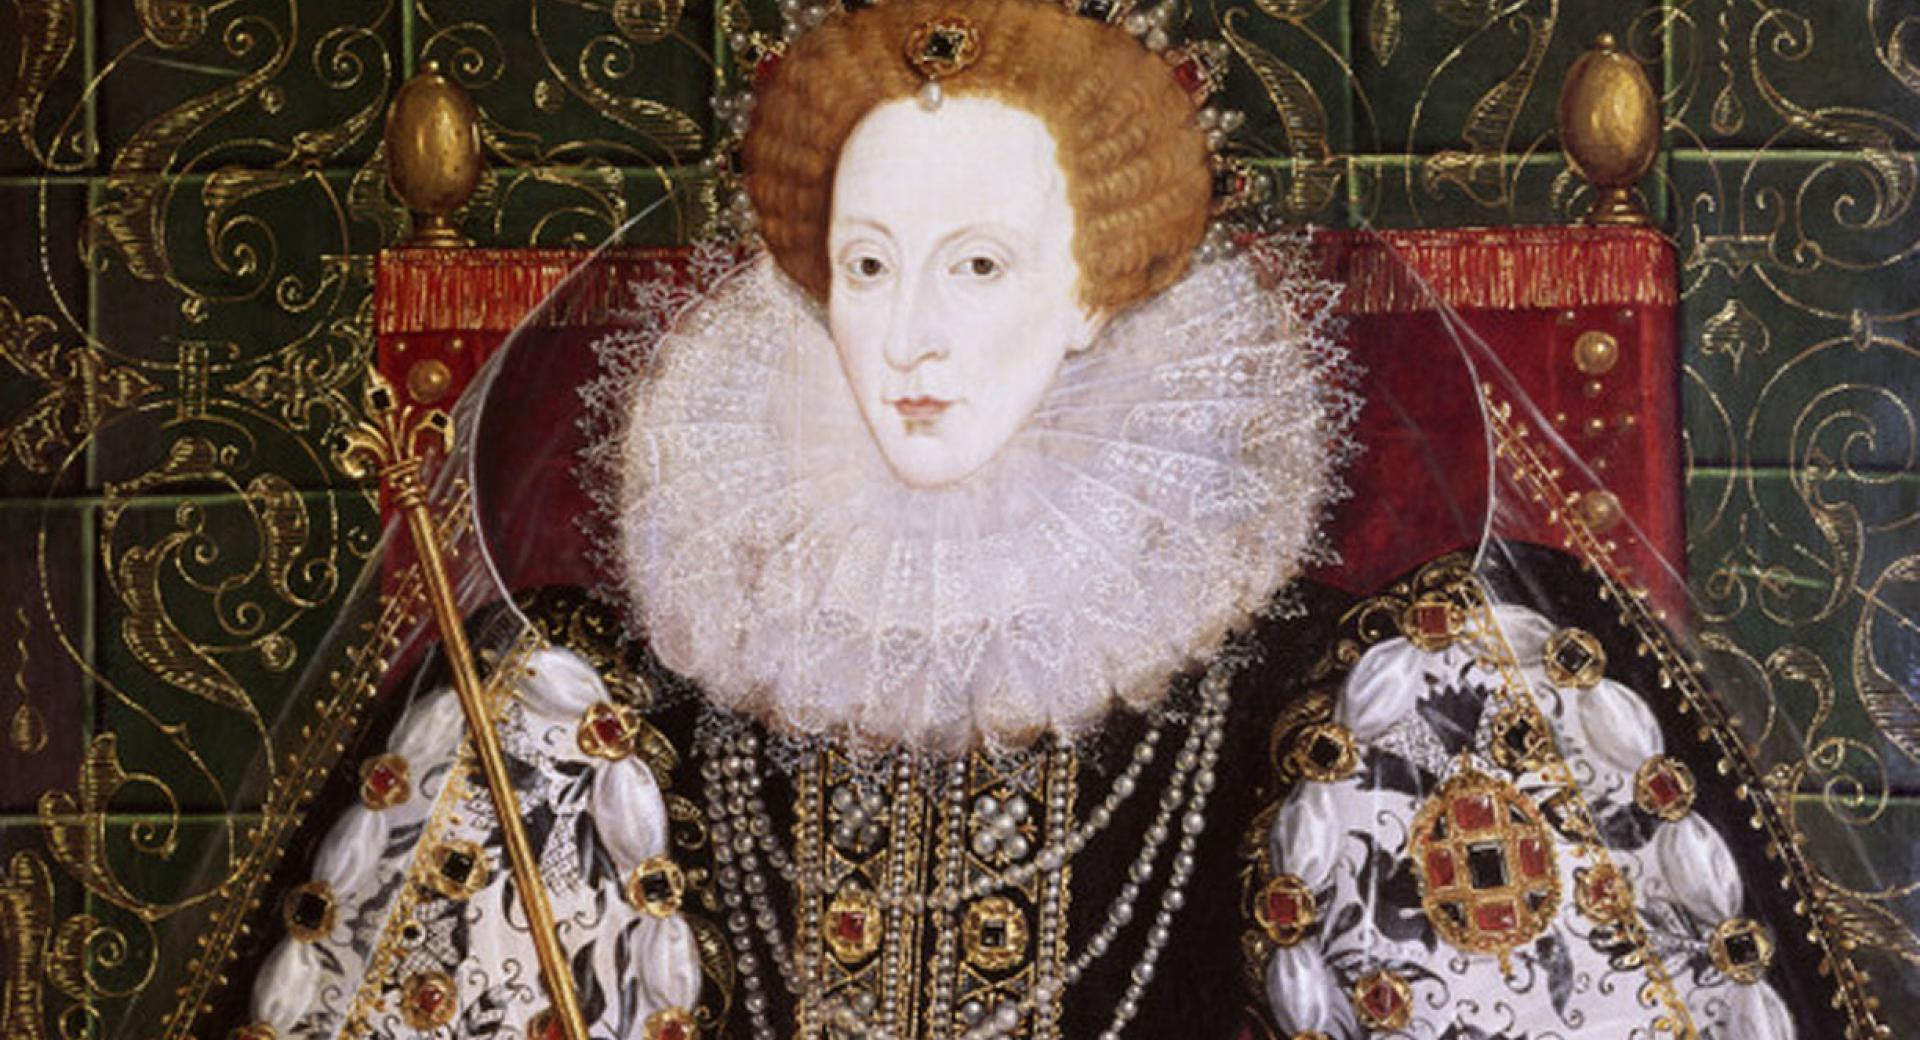 Queen Elizabeth I had to thrive as a female ruler in a world dominated by men